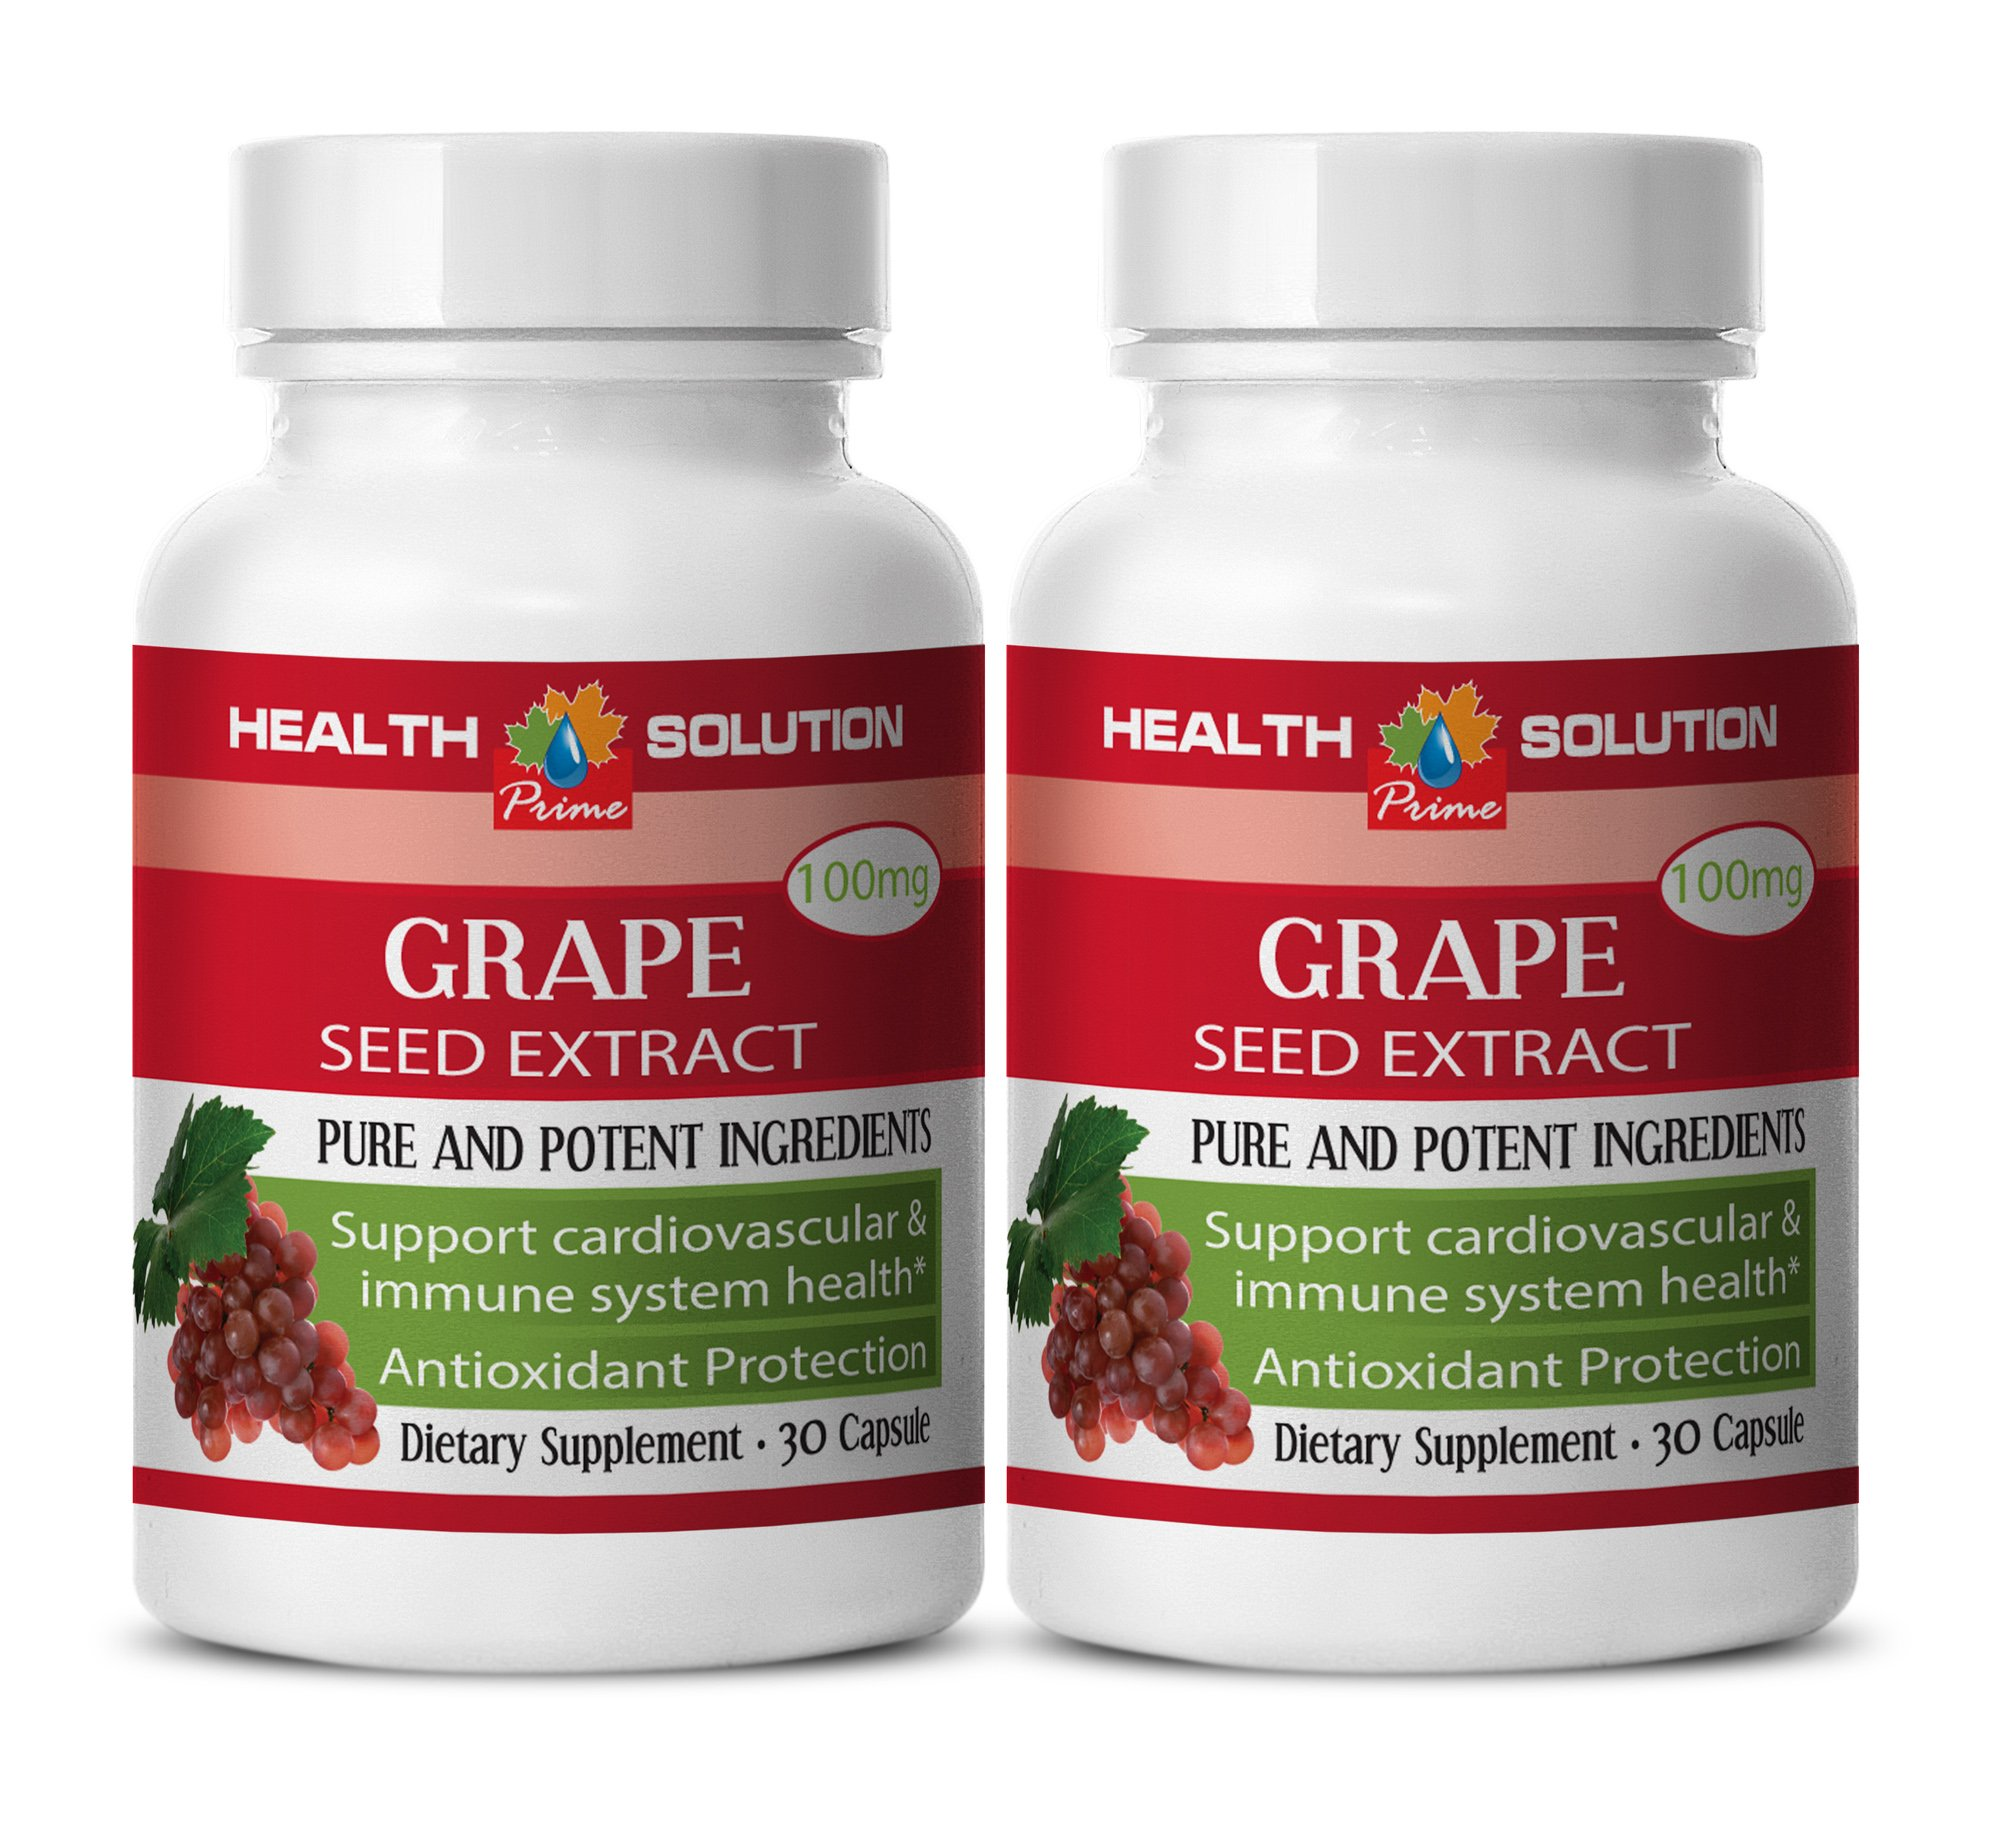 Blood pressure vitamins - GRAPE SEED EXTRACT - Grape seed extract bulk - 2 Bottles 60 Capsules